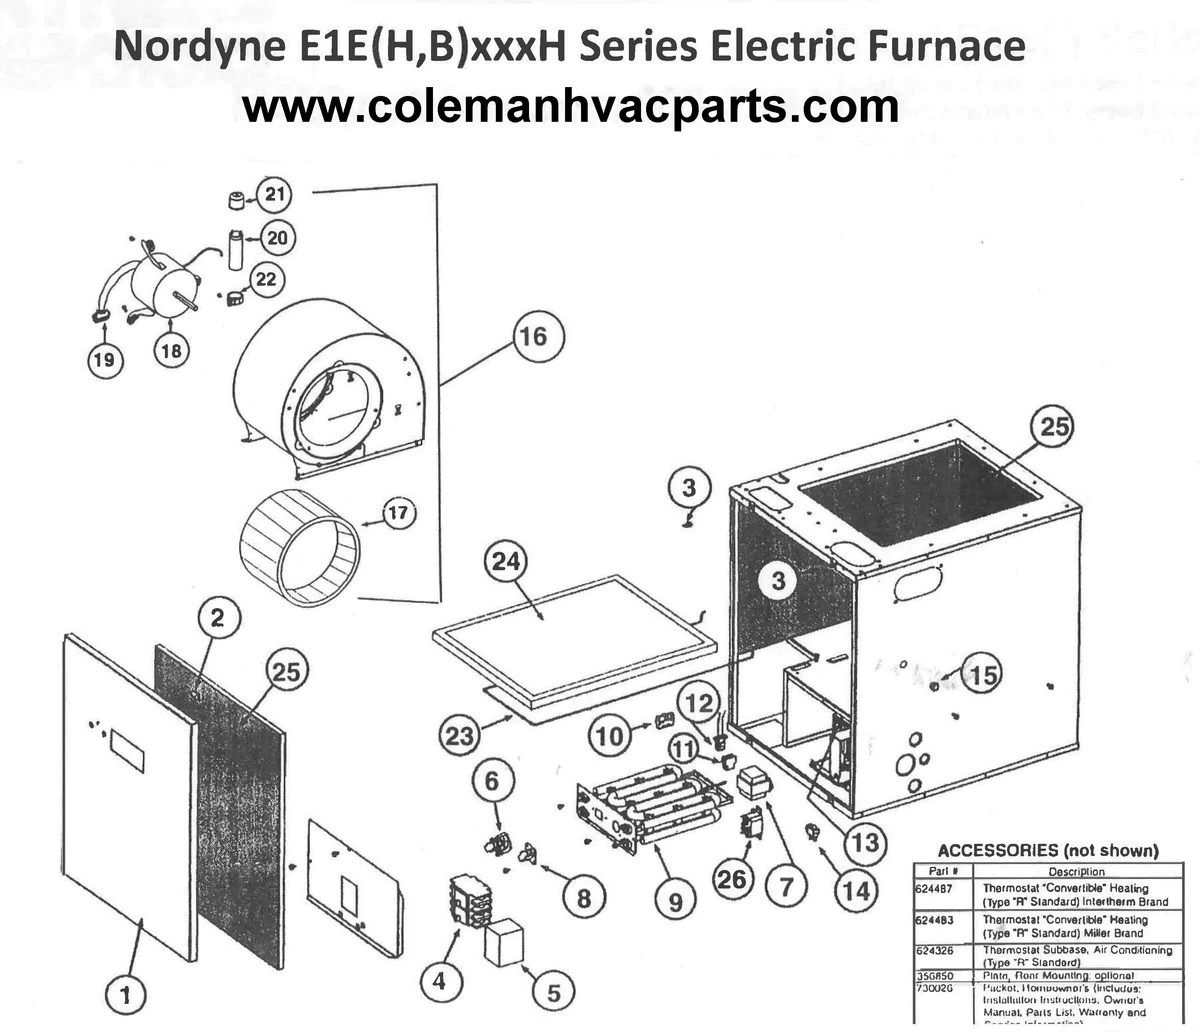 small resolution of e1eh015h nordyne electric furnace parts u2013 hvacpartstoremiller central air conditioner wiring diagram 17